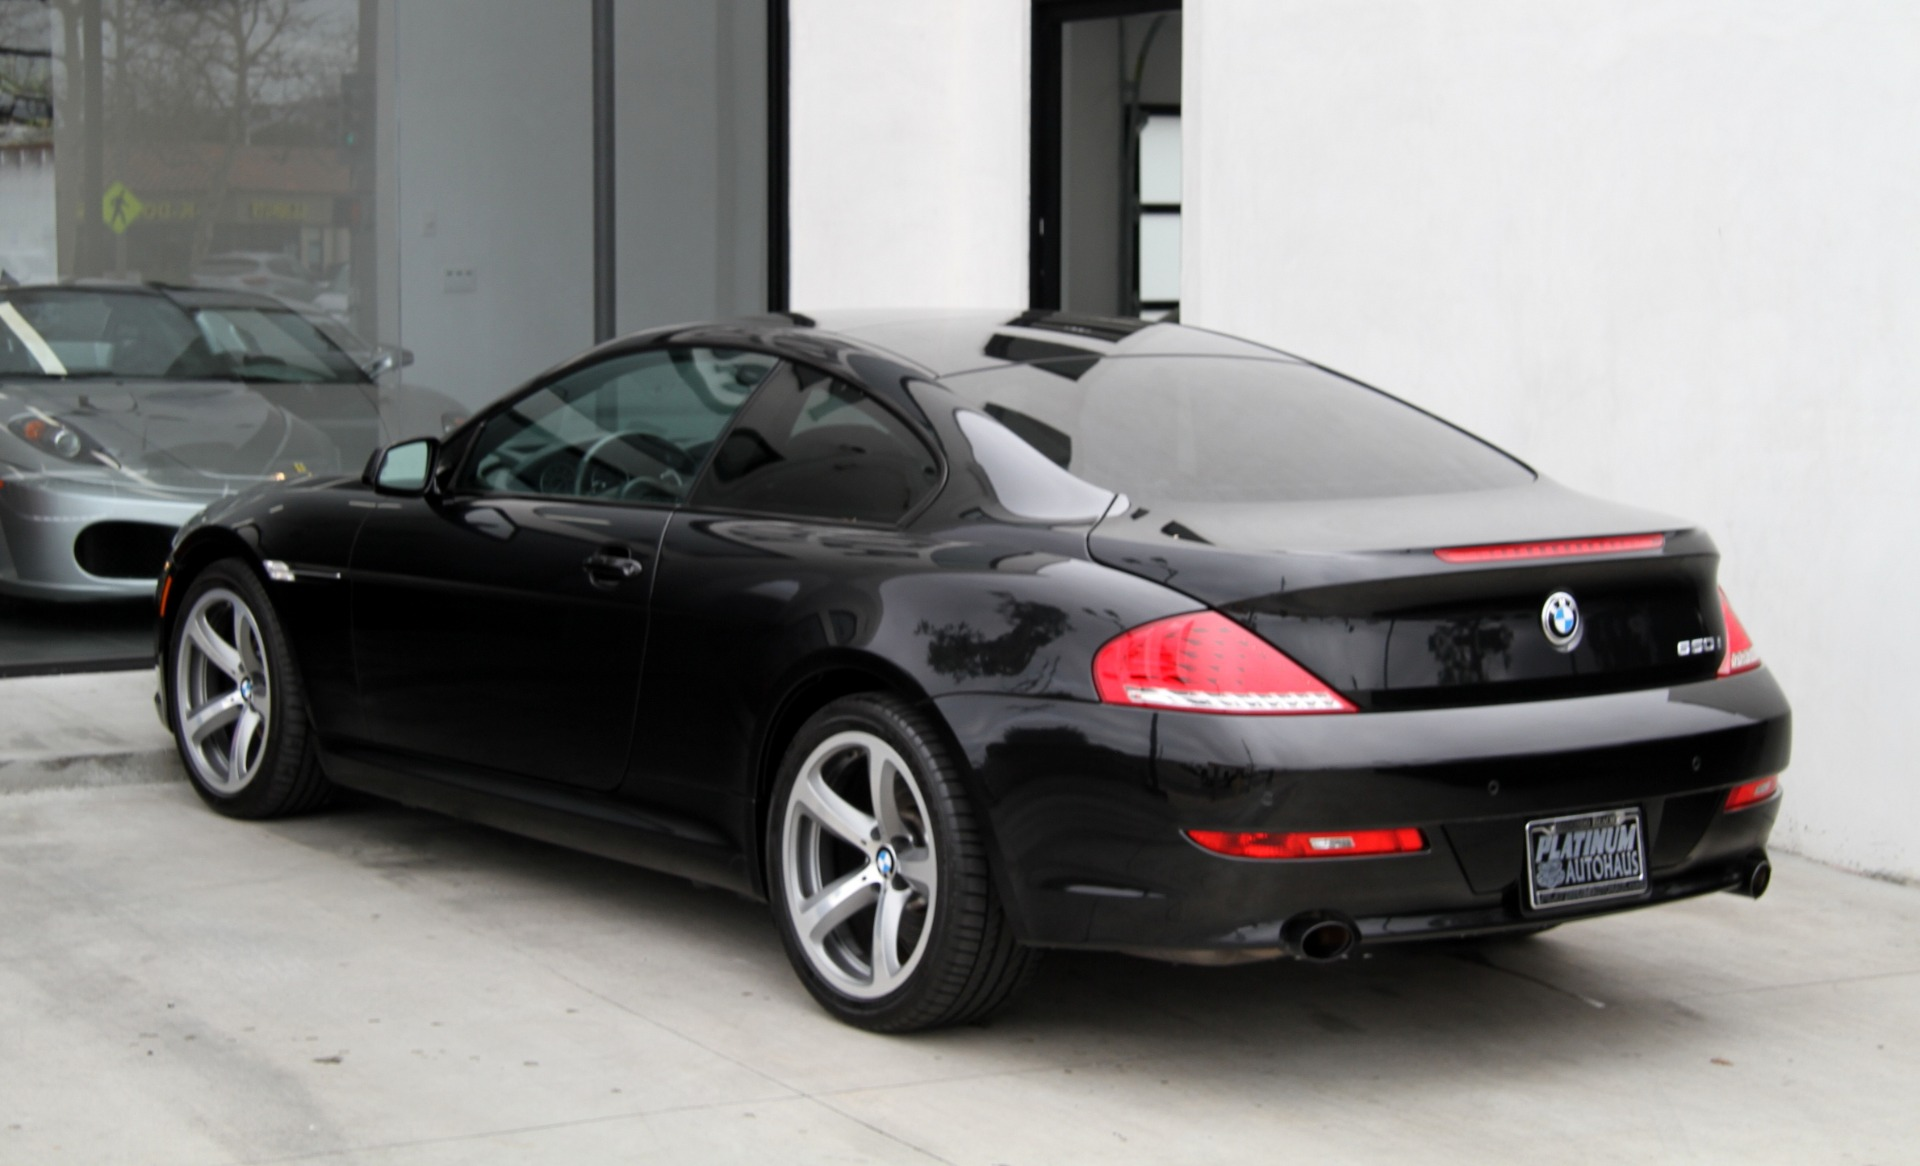 Bmw Dealership Near Me >> 2010 BMW 6 Series 650i Stock # 6077 for sale near Redondo Beach, CA | CA BMW Dealer